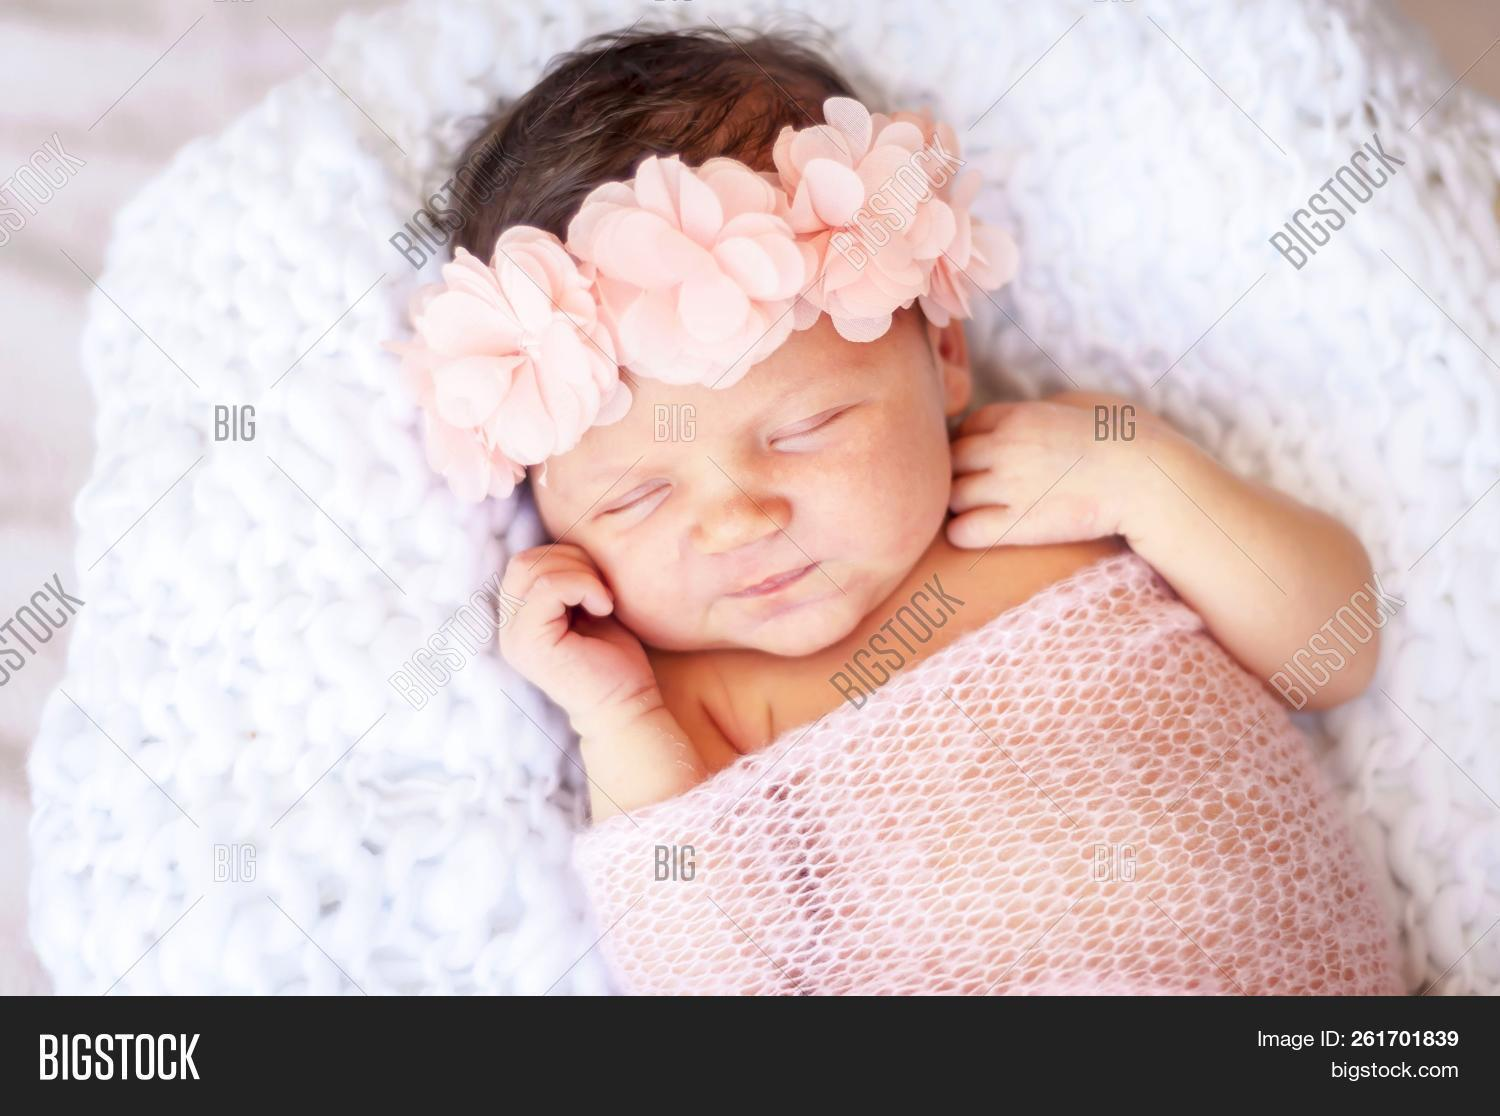 Cute Adorable Newborn Image Photo Free Trial Bigstock